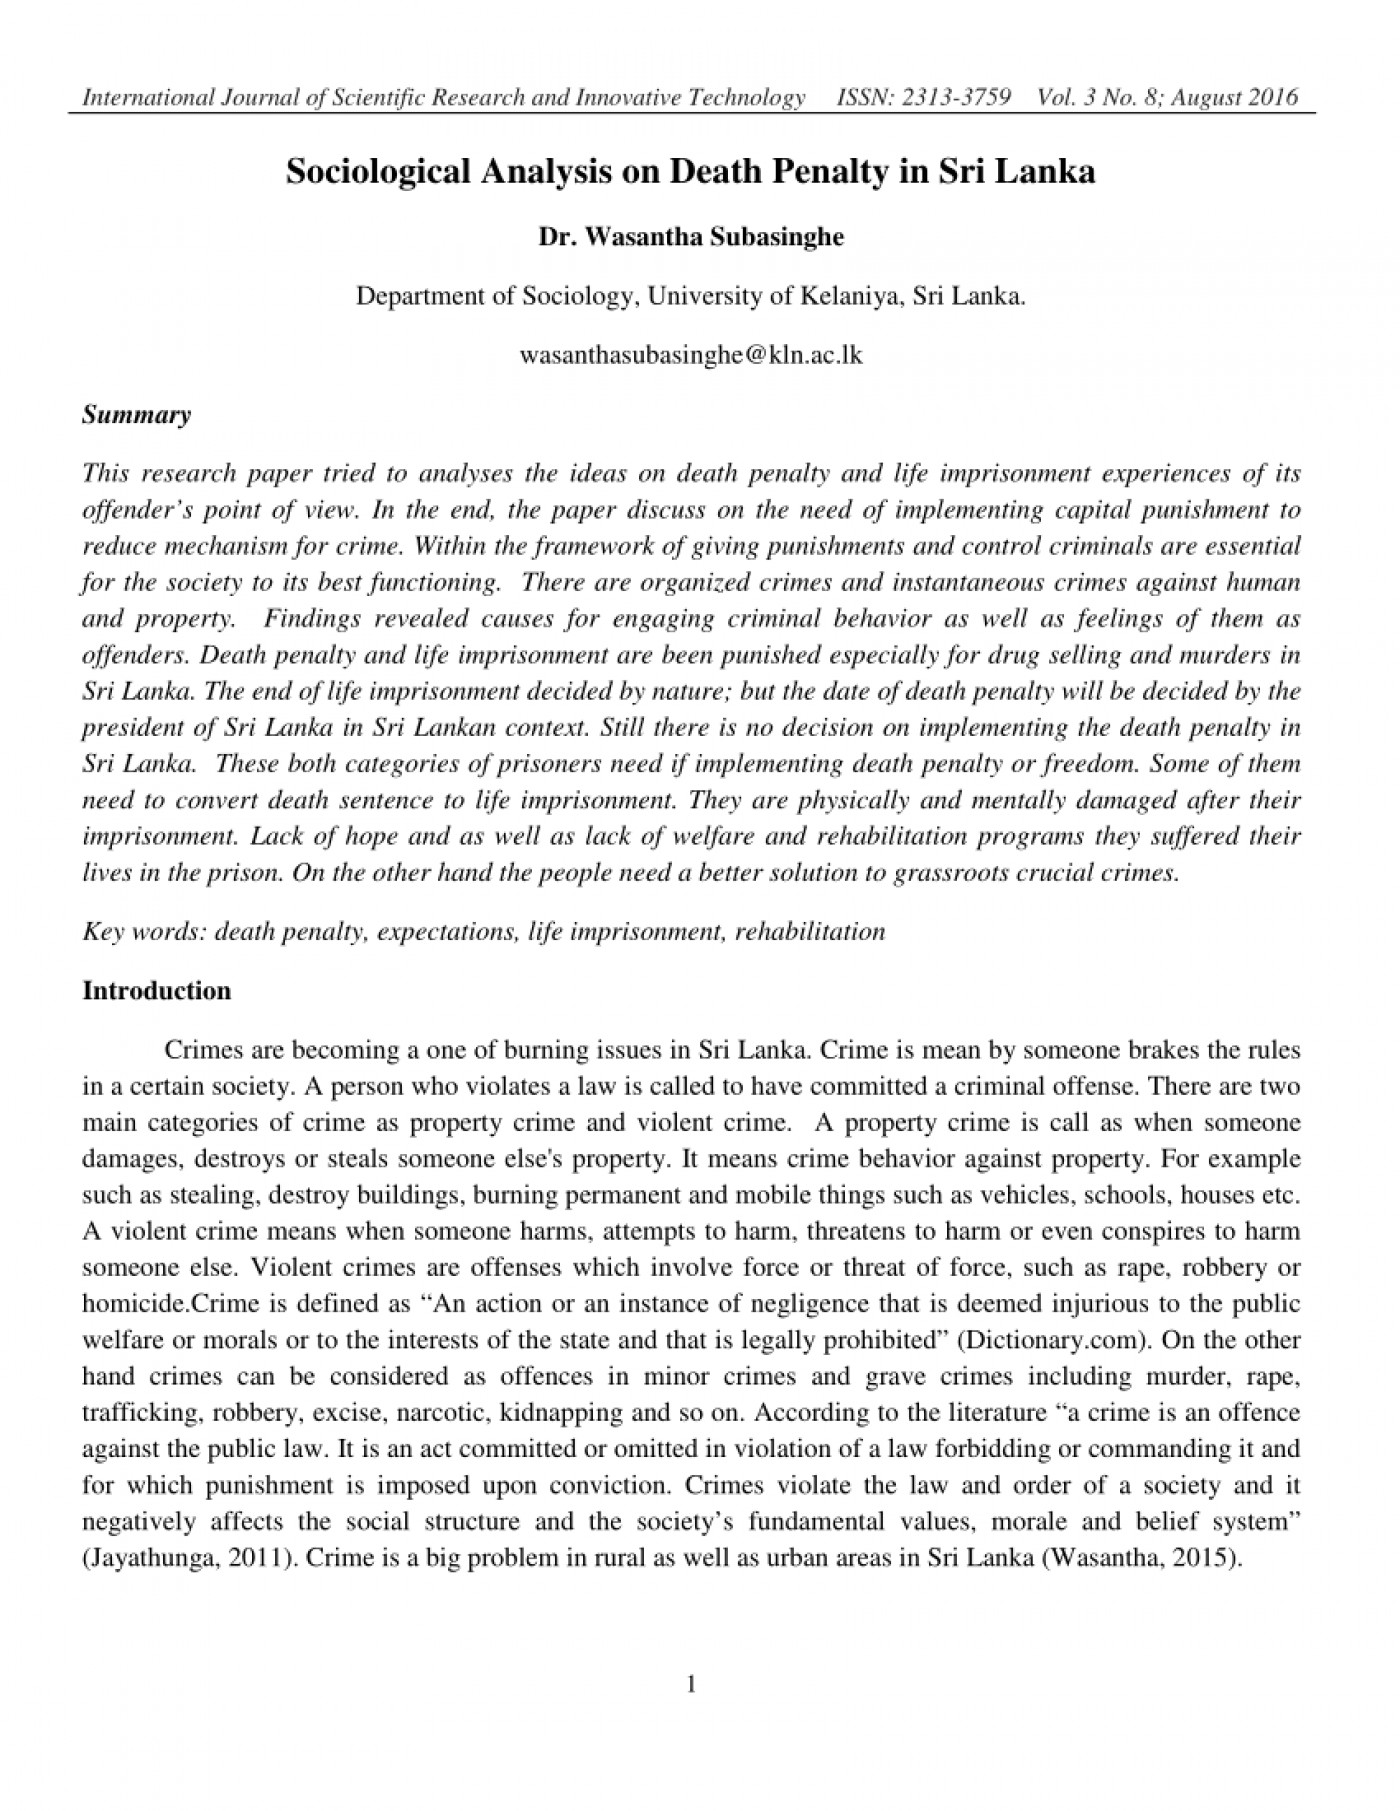 008 Research Paper Death Penalty Abstract Remarkable 1400